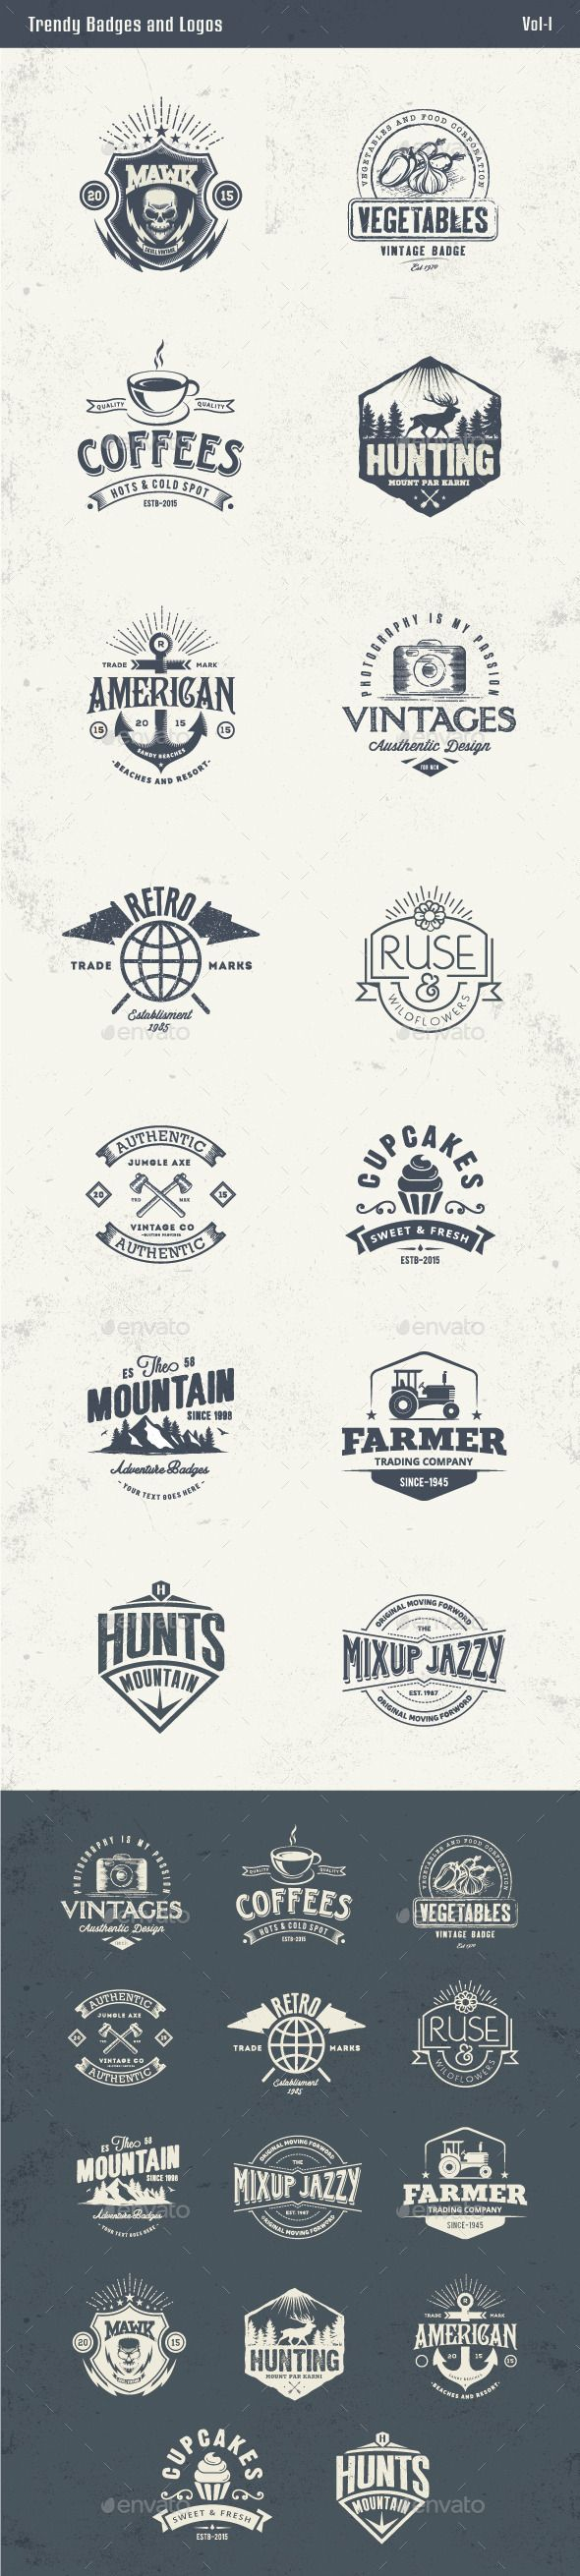 Trendy Badges and Logos Template #design Download: http://graphicriver.net/item/trendy-badges-and-logos-vol1/13088834?ref=ksioks